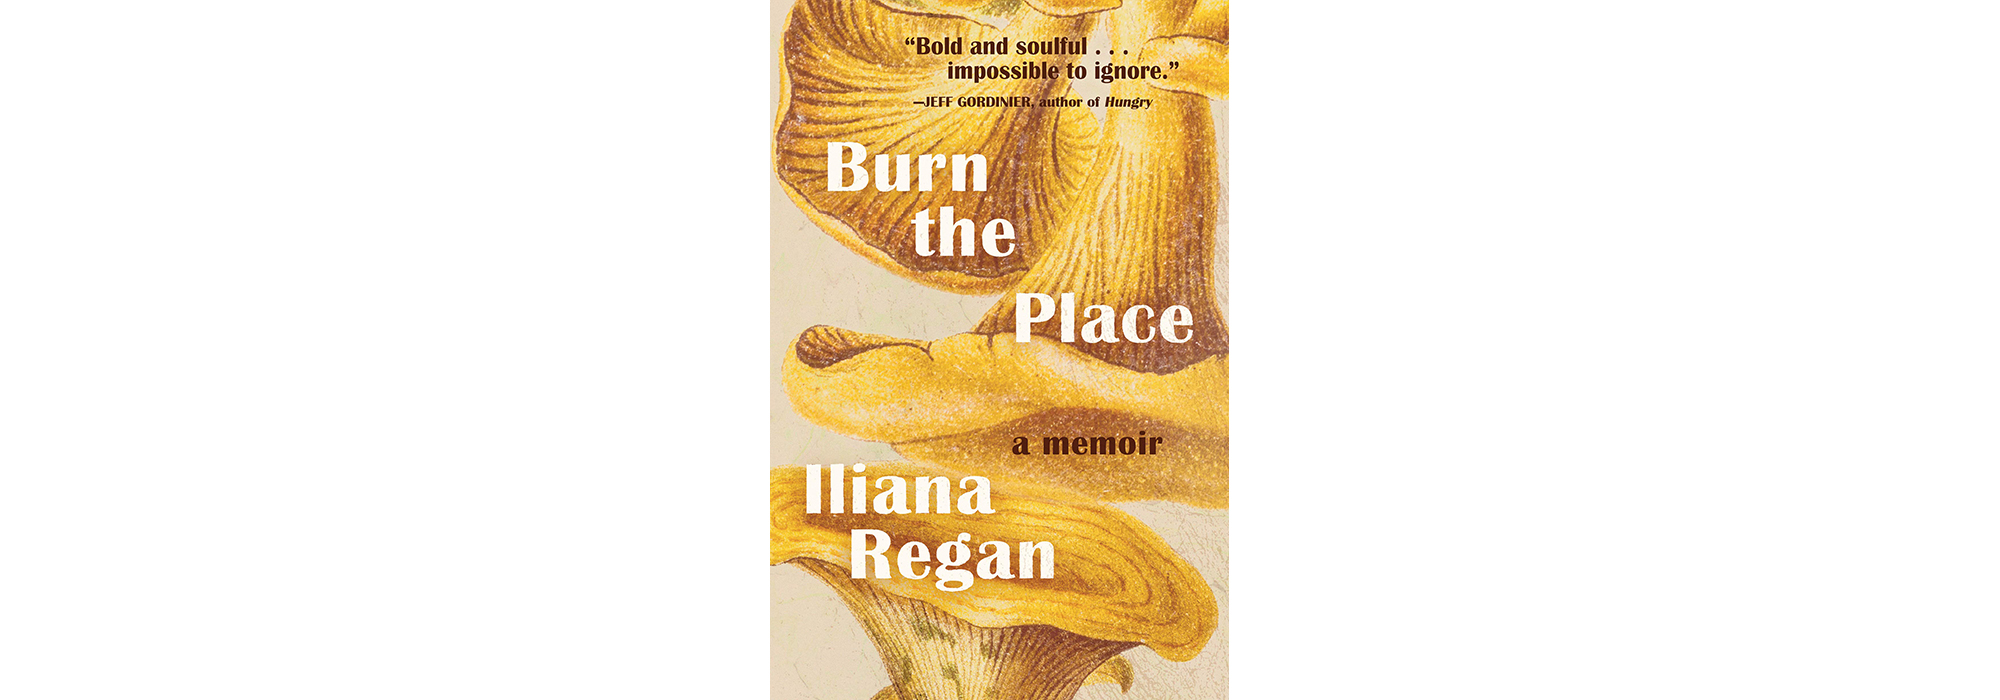 Cover of Burn the Place, by Iliana Regan